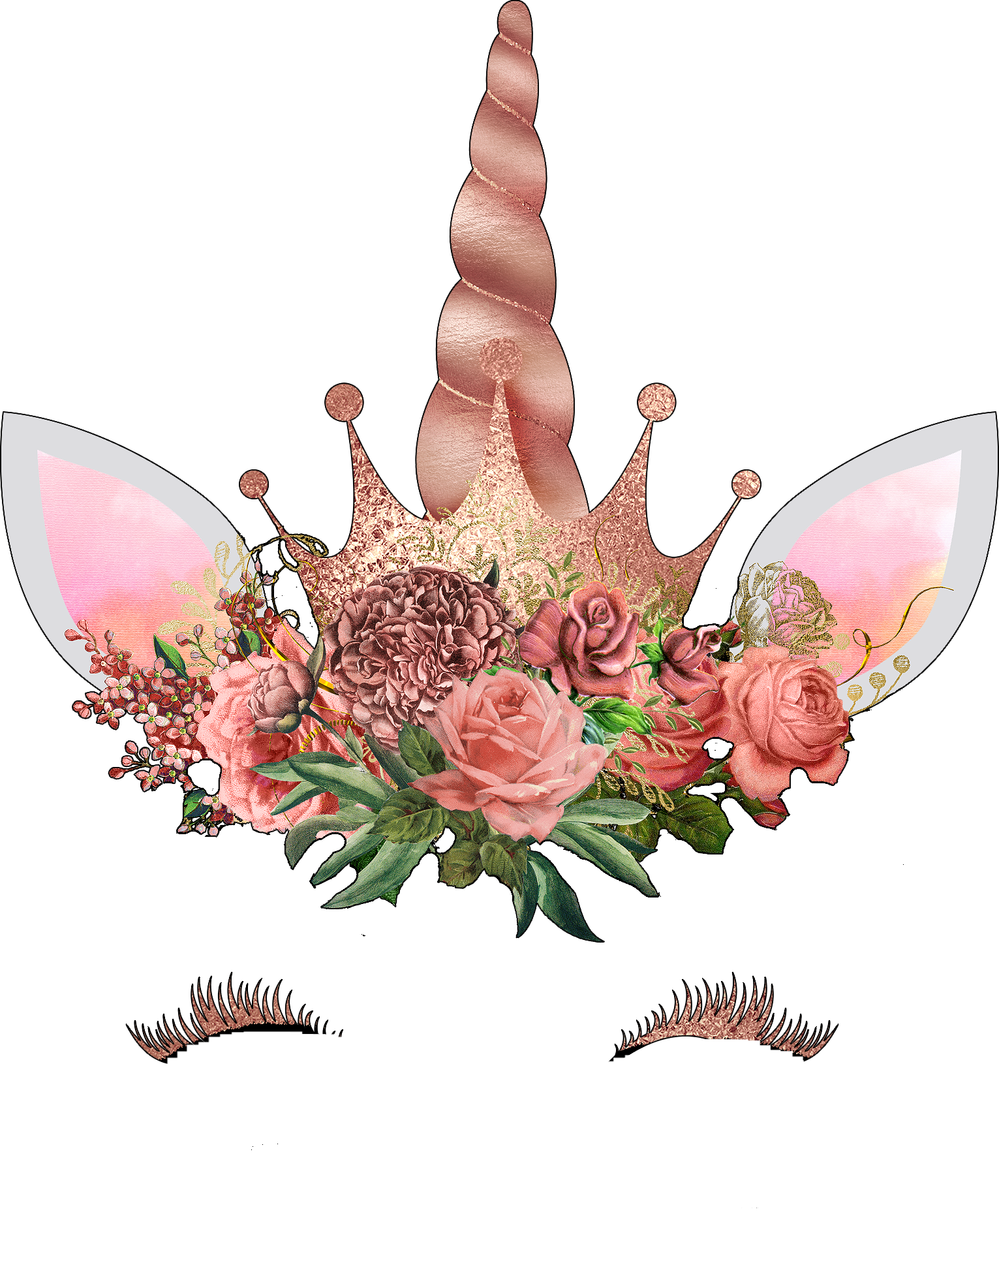 Unicorn face png. Fancy rose gold ready